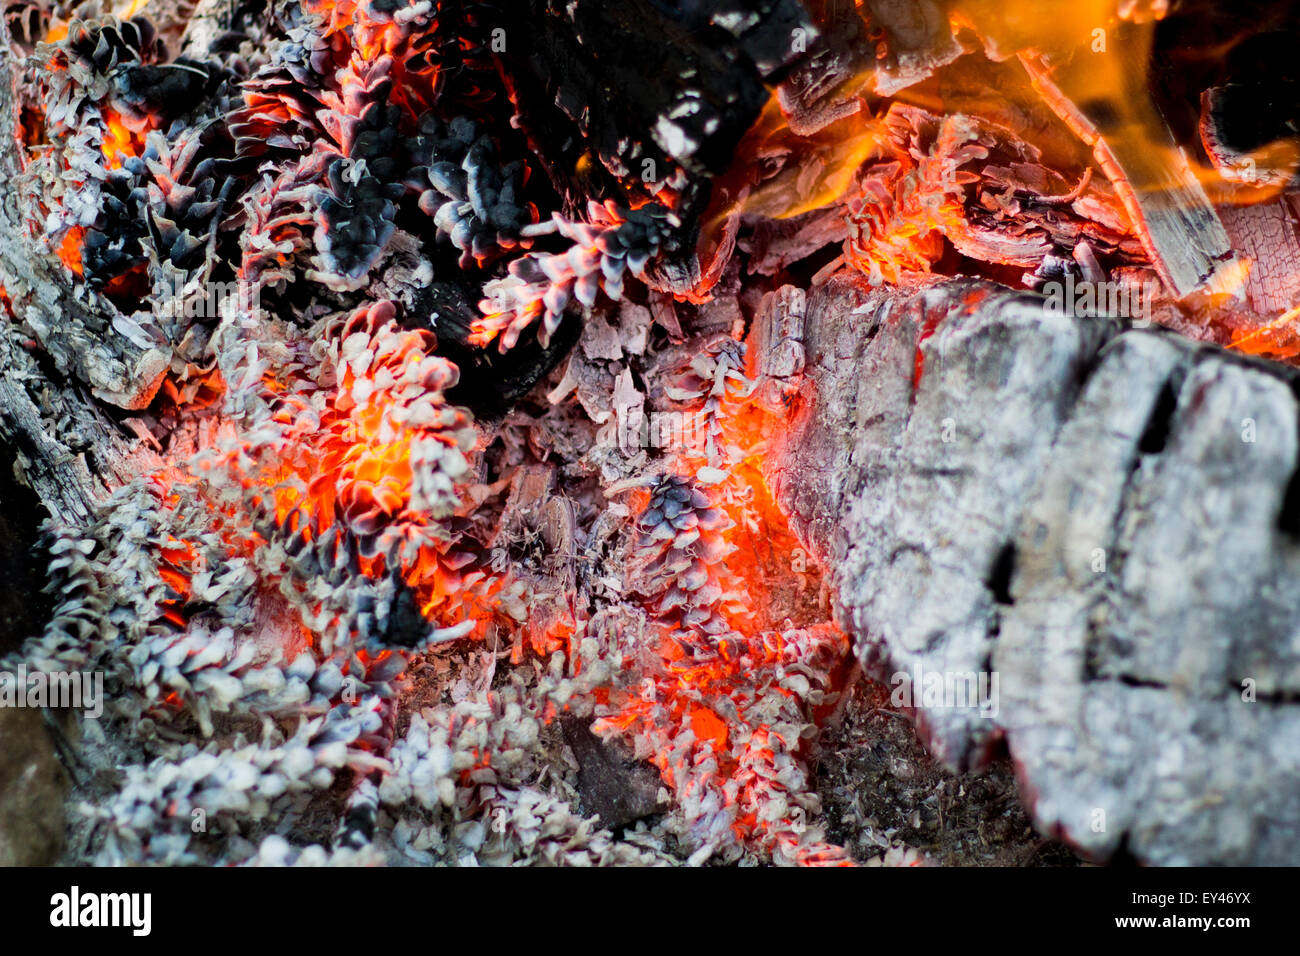 Burning pinecones in the fall brush fire - Stock Image